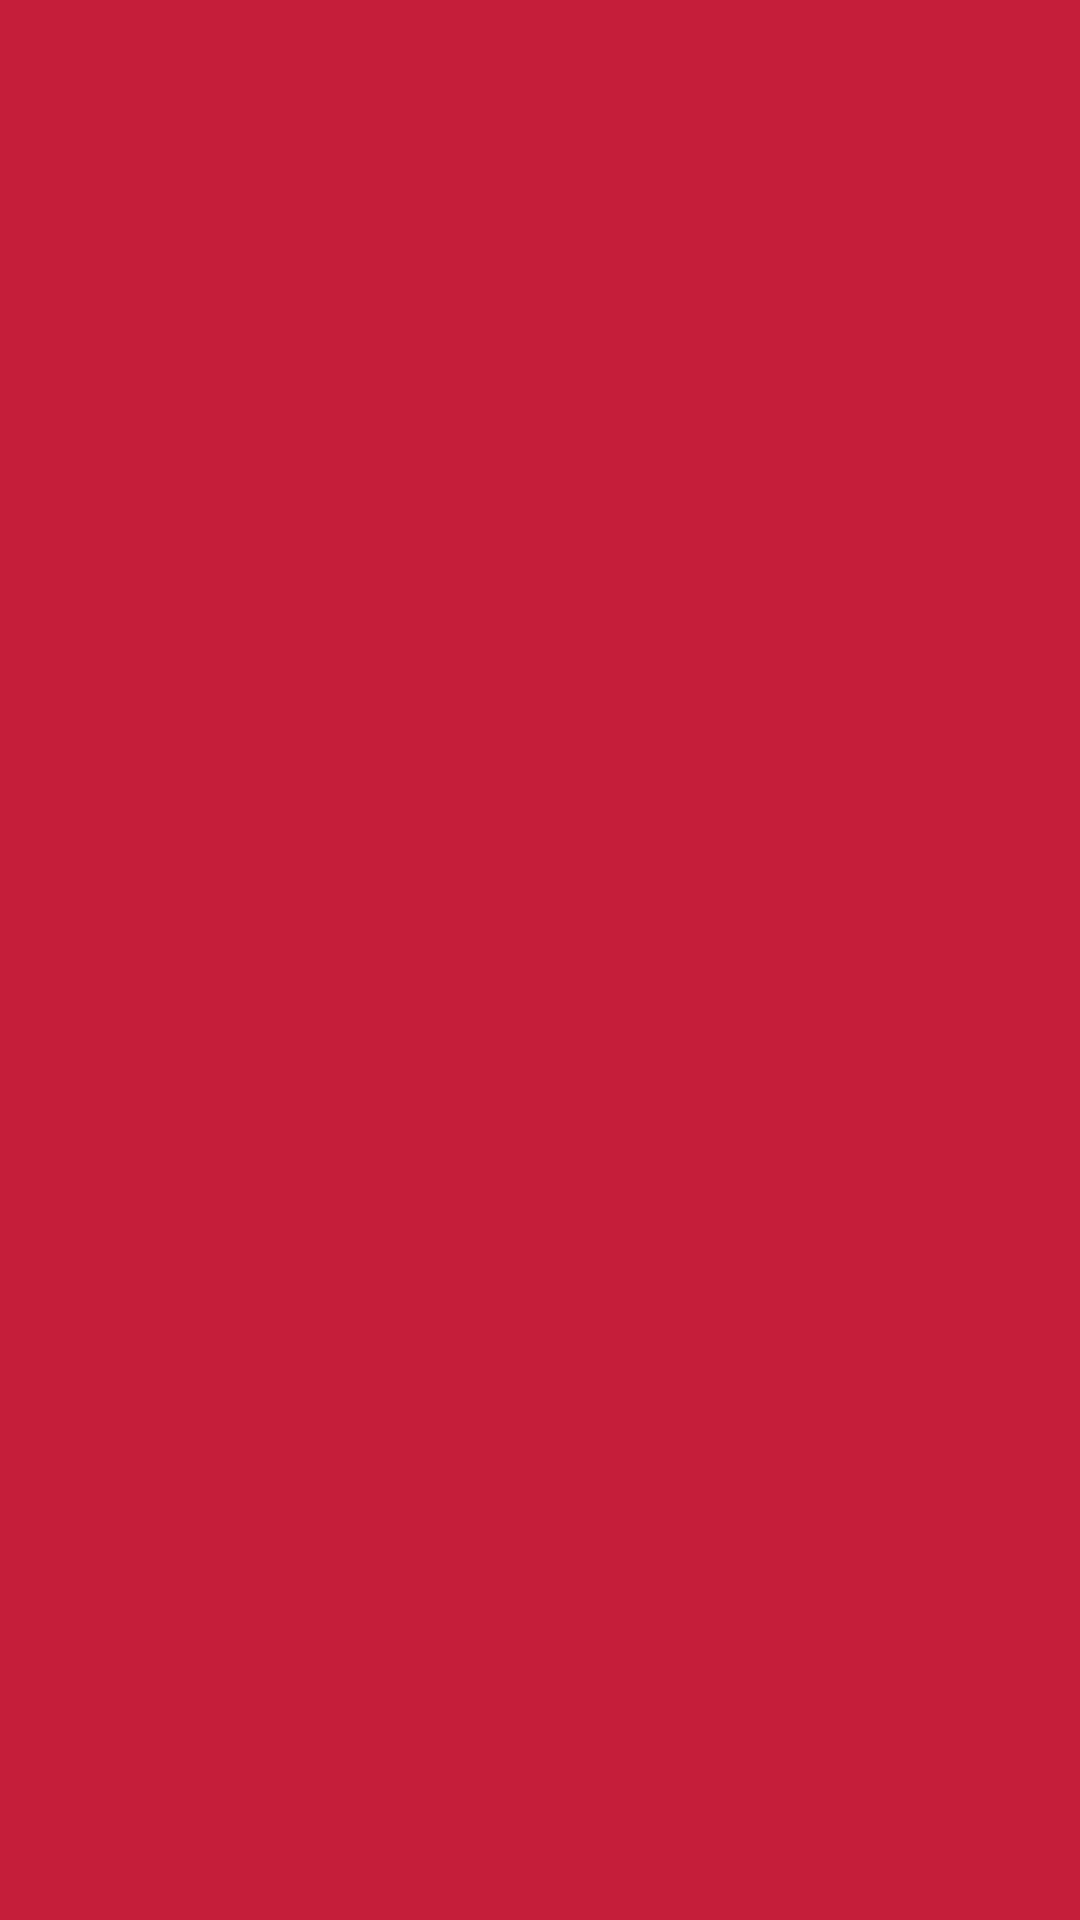 1080x1920 Cardinal Solid Color Background